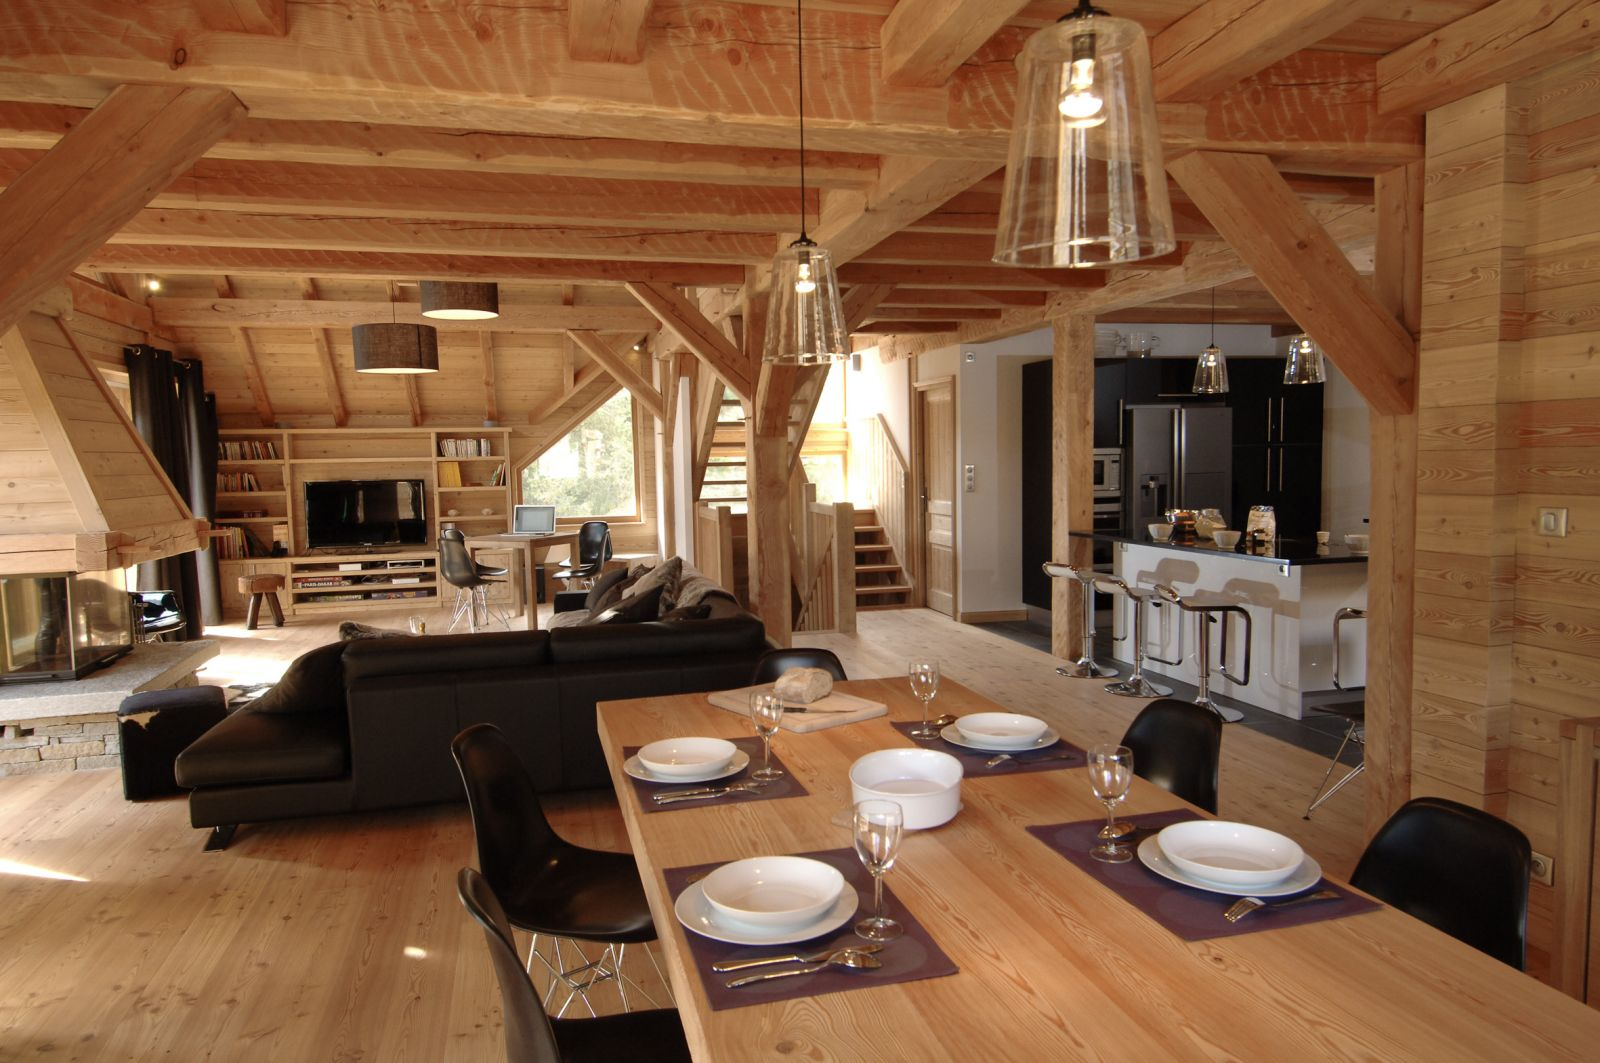 Chalet Prestige I Luxury chalet and services I Official